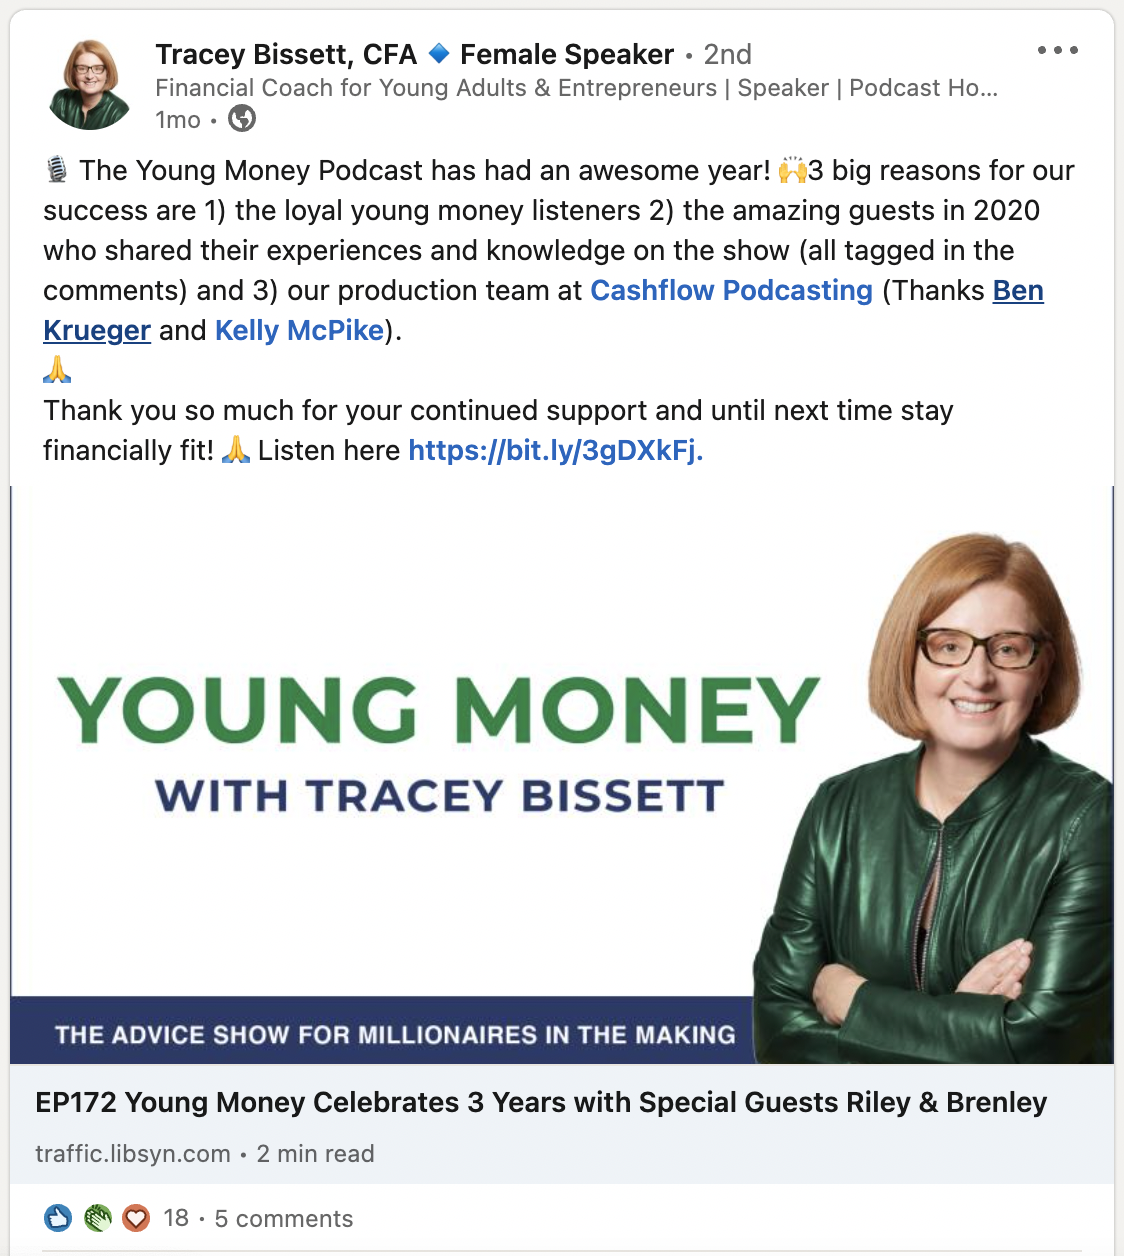 Tracey Bissett Podcast Testimonial